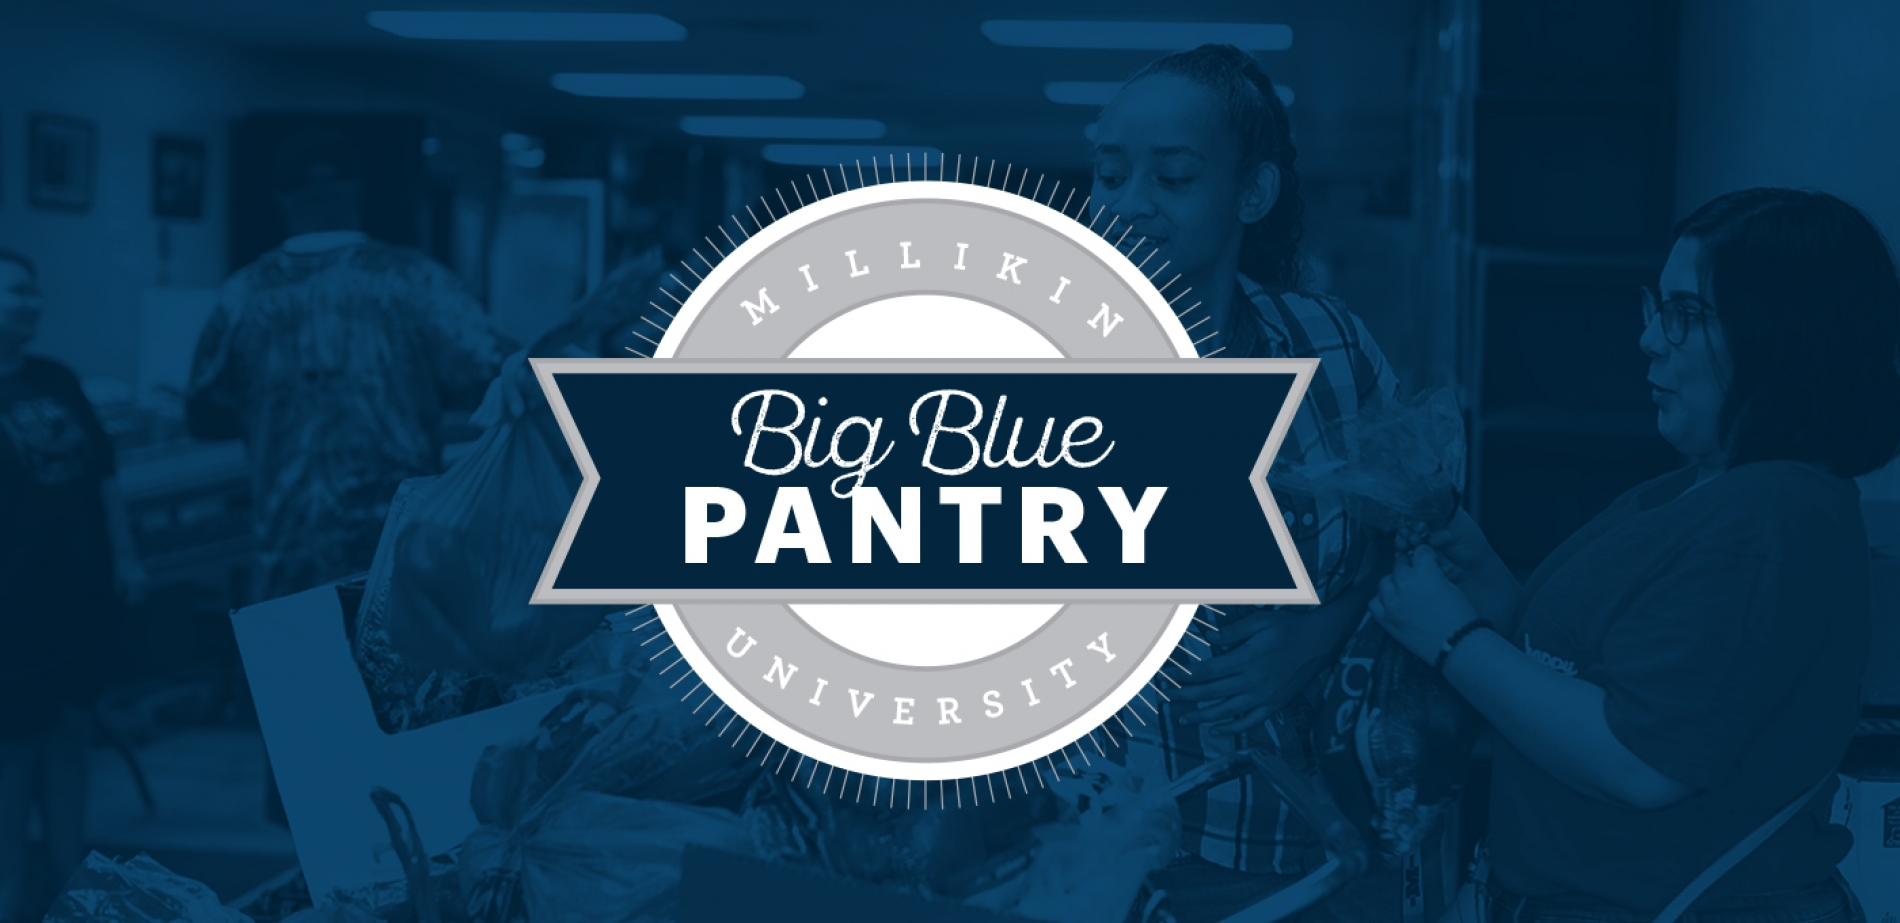 Big Blue pantry